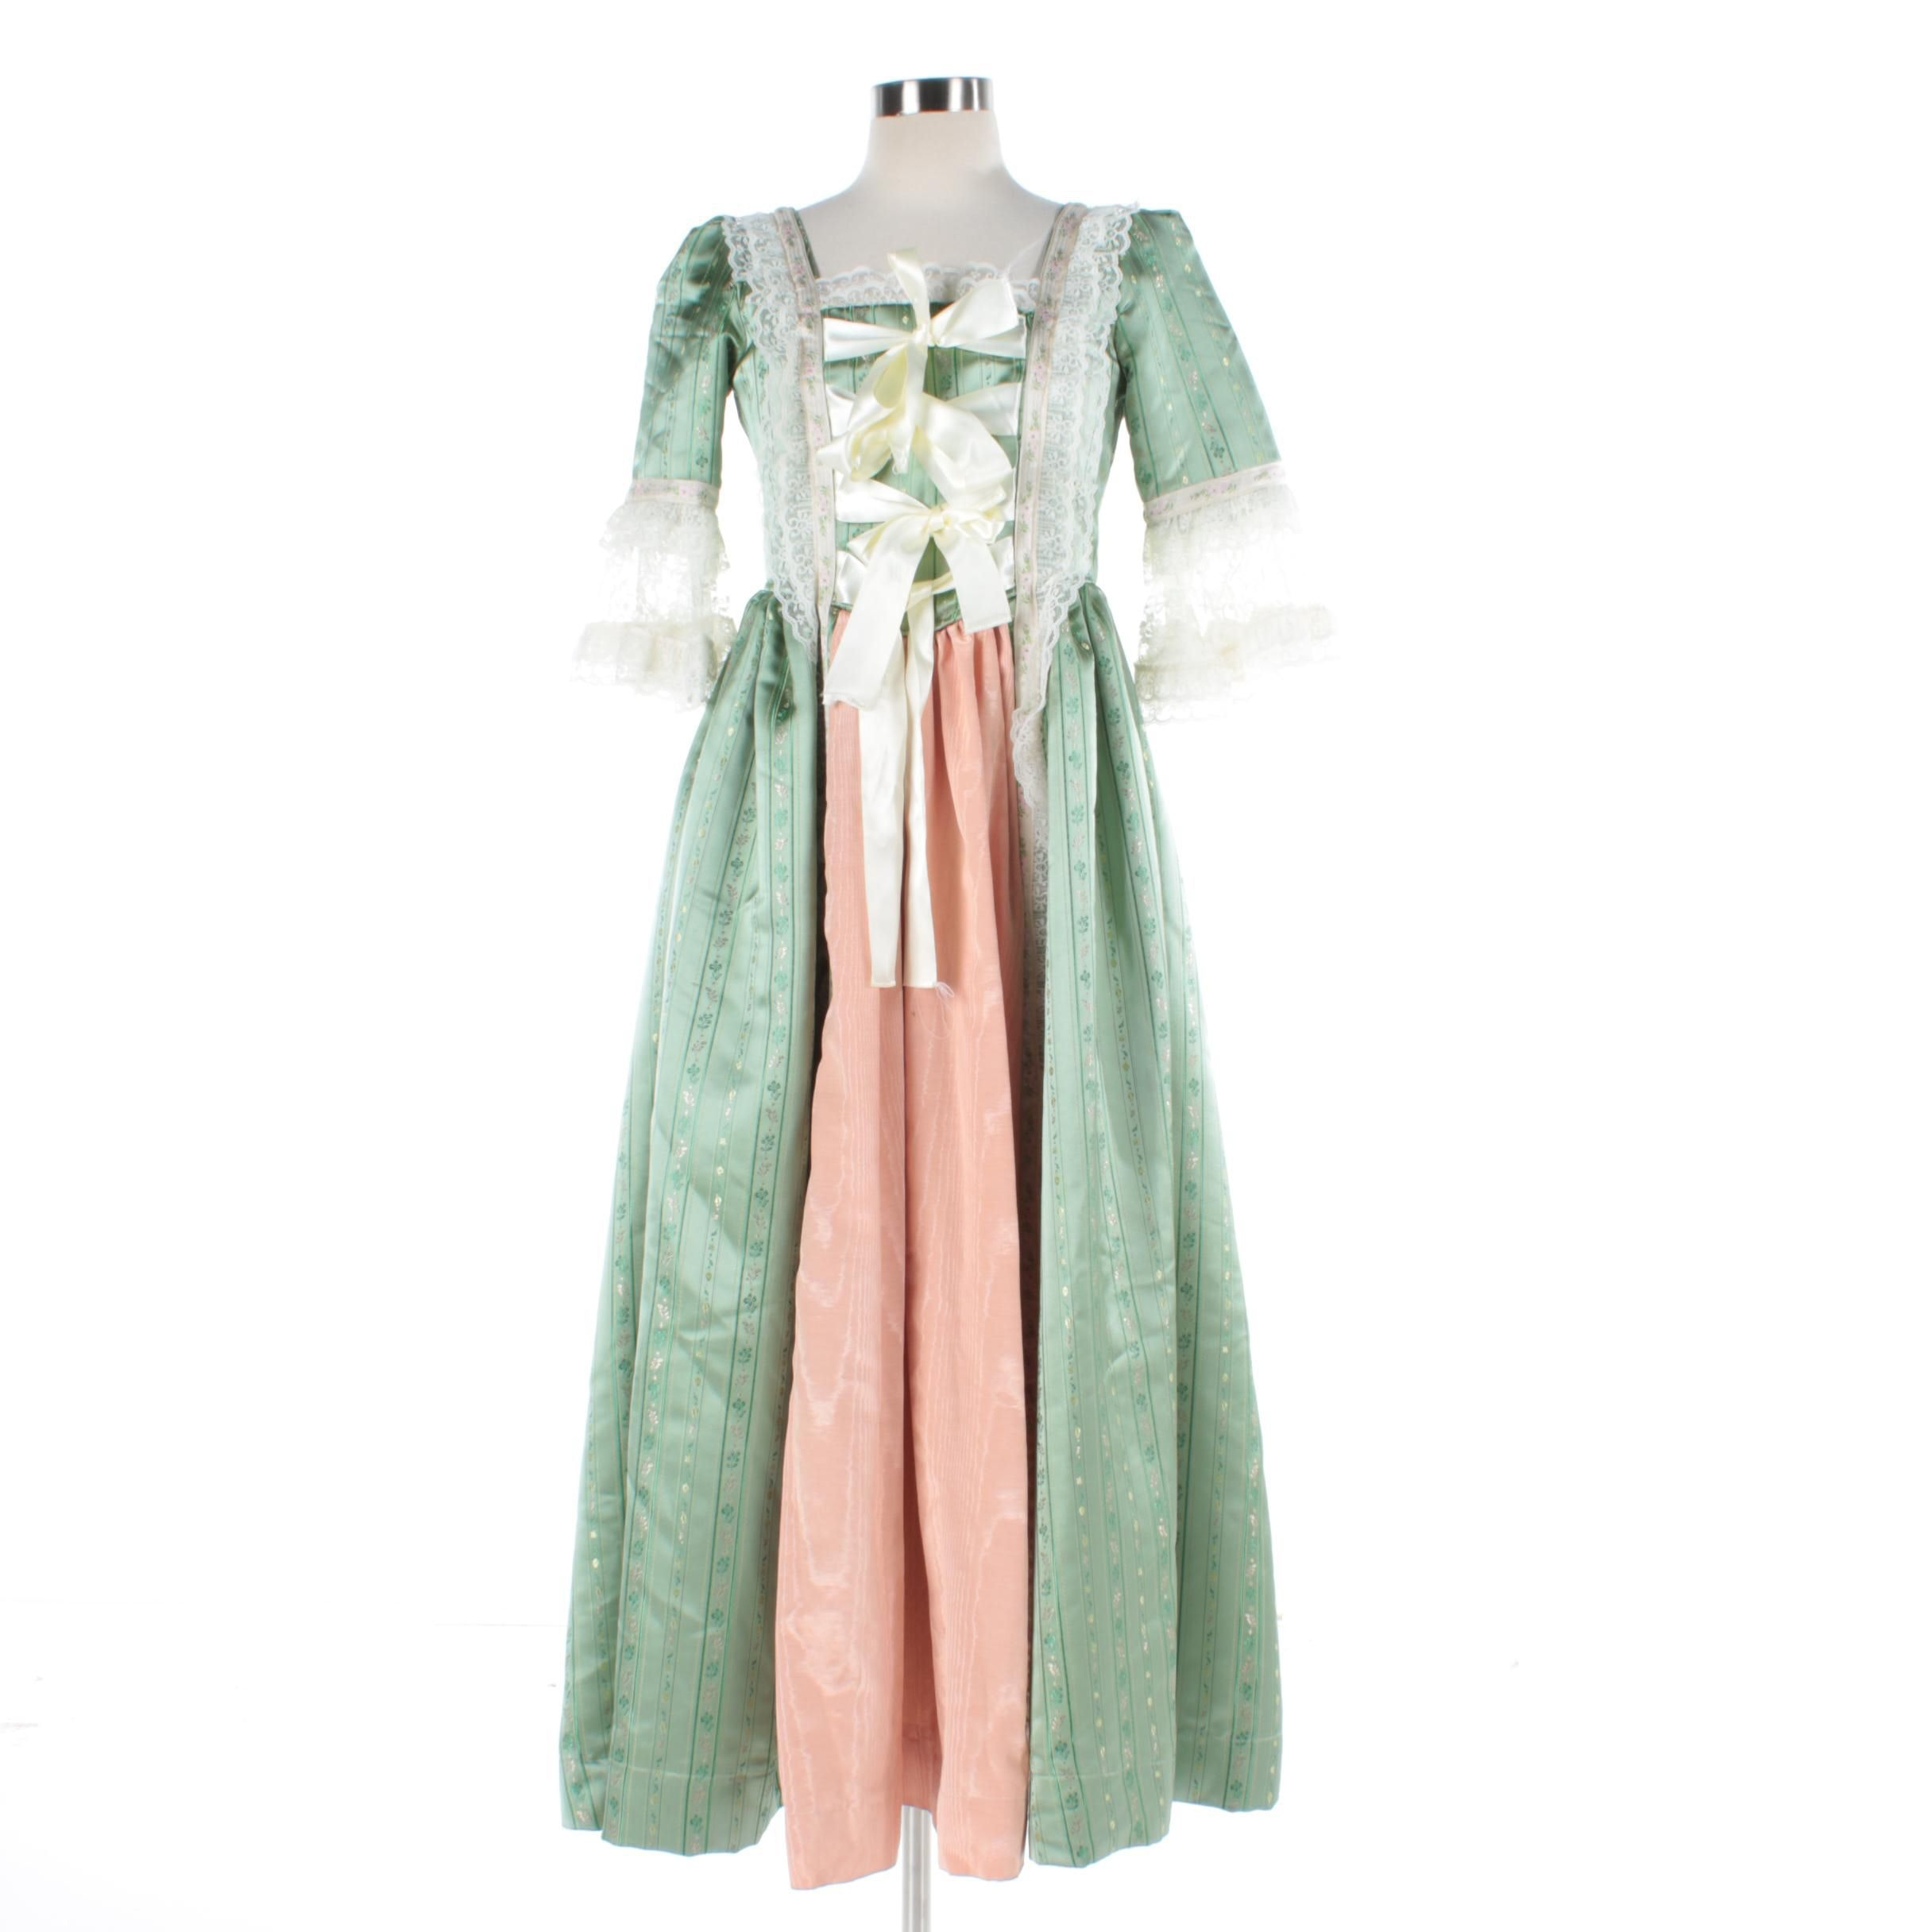 Reproduction 18th Century Gown with Lace Accents